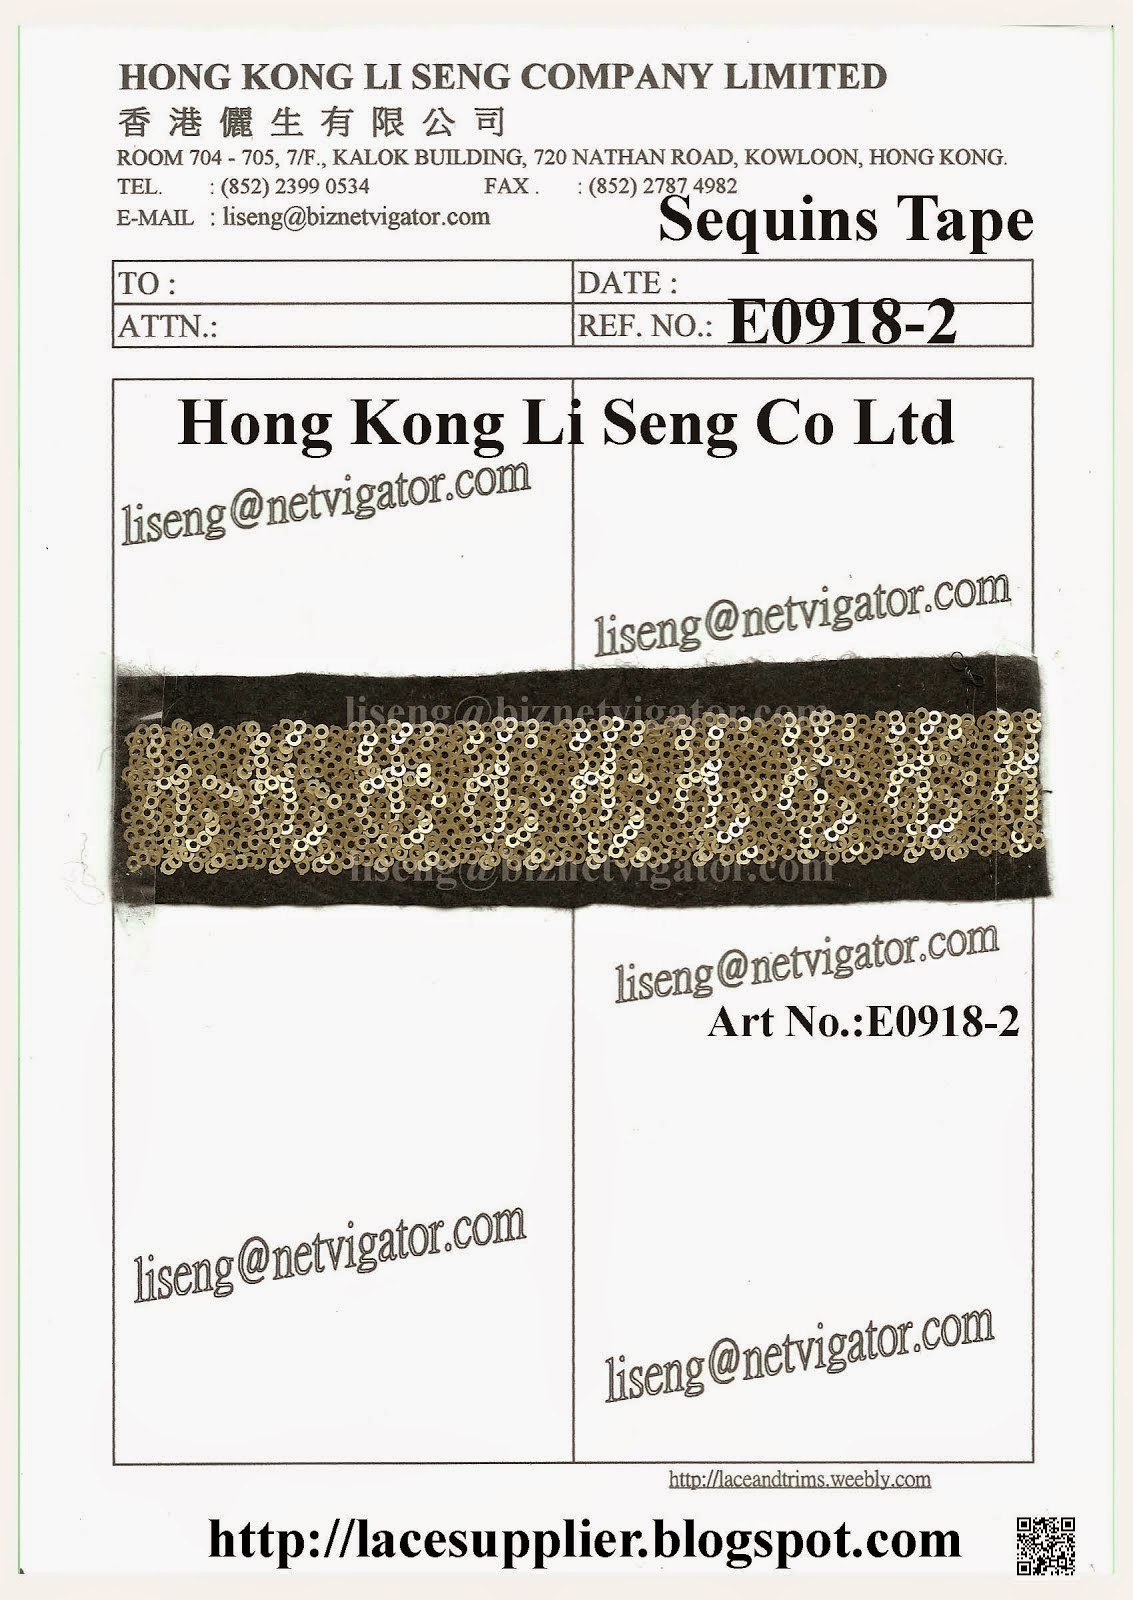 New Mini Sequins With Fabric Tape Manufacturing - Hong Kong Li Seng Co Ltd